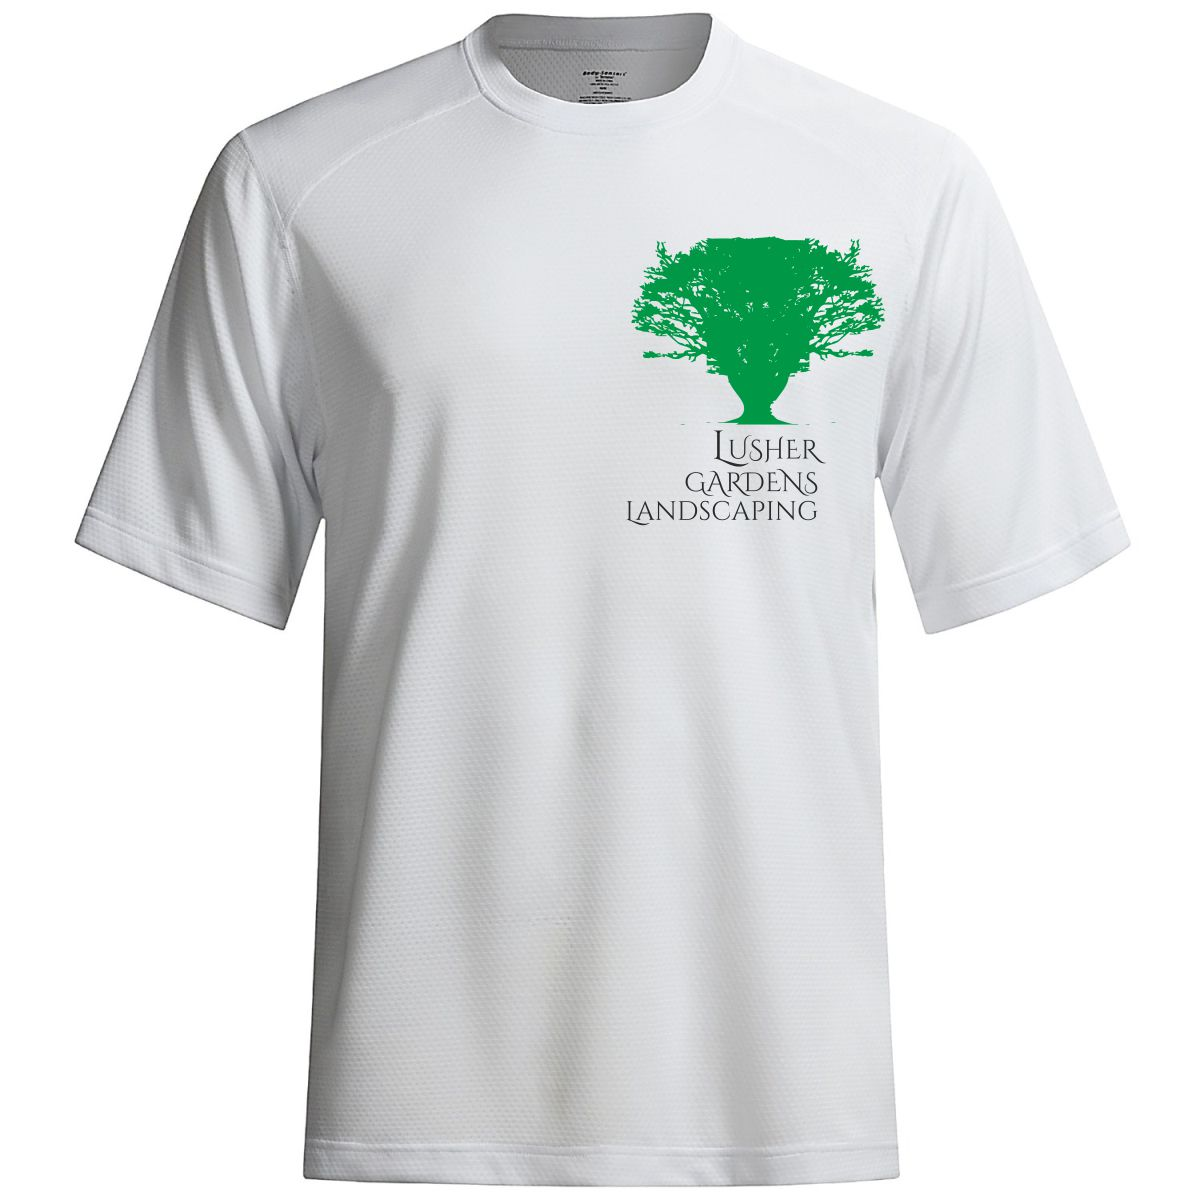 22 professional landscape t shirt designs for a landscape for Garden t shirt designs